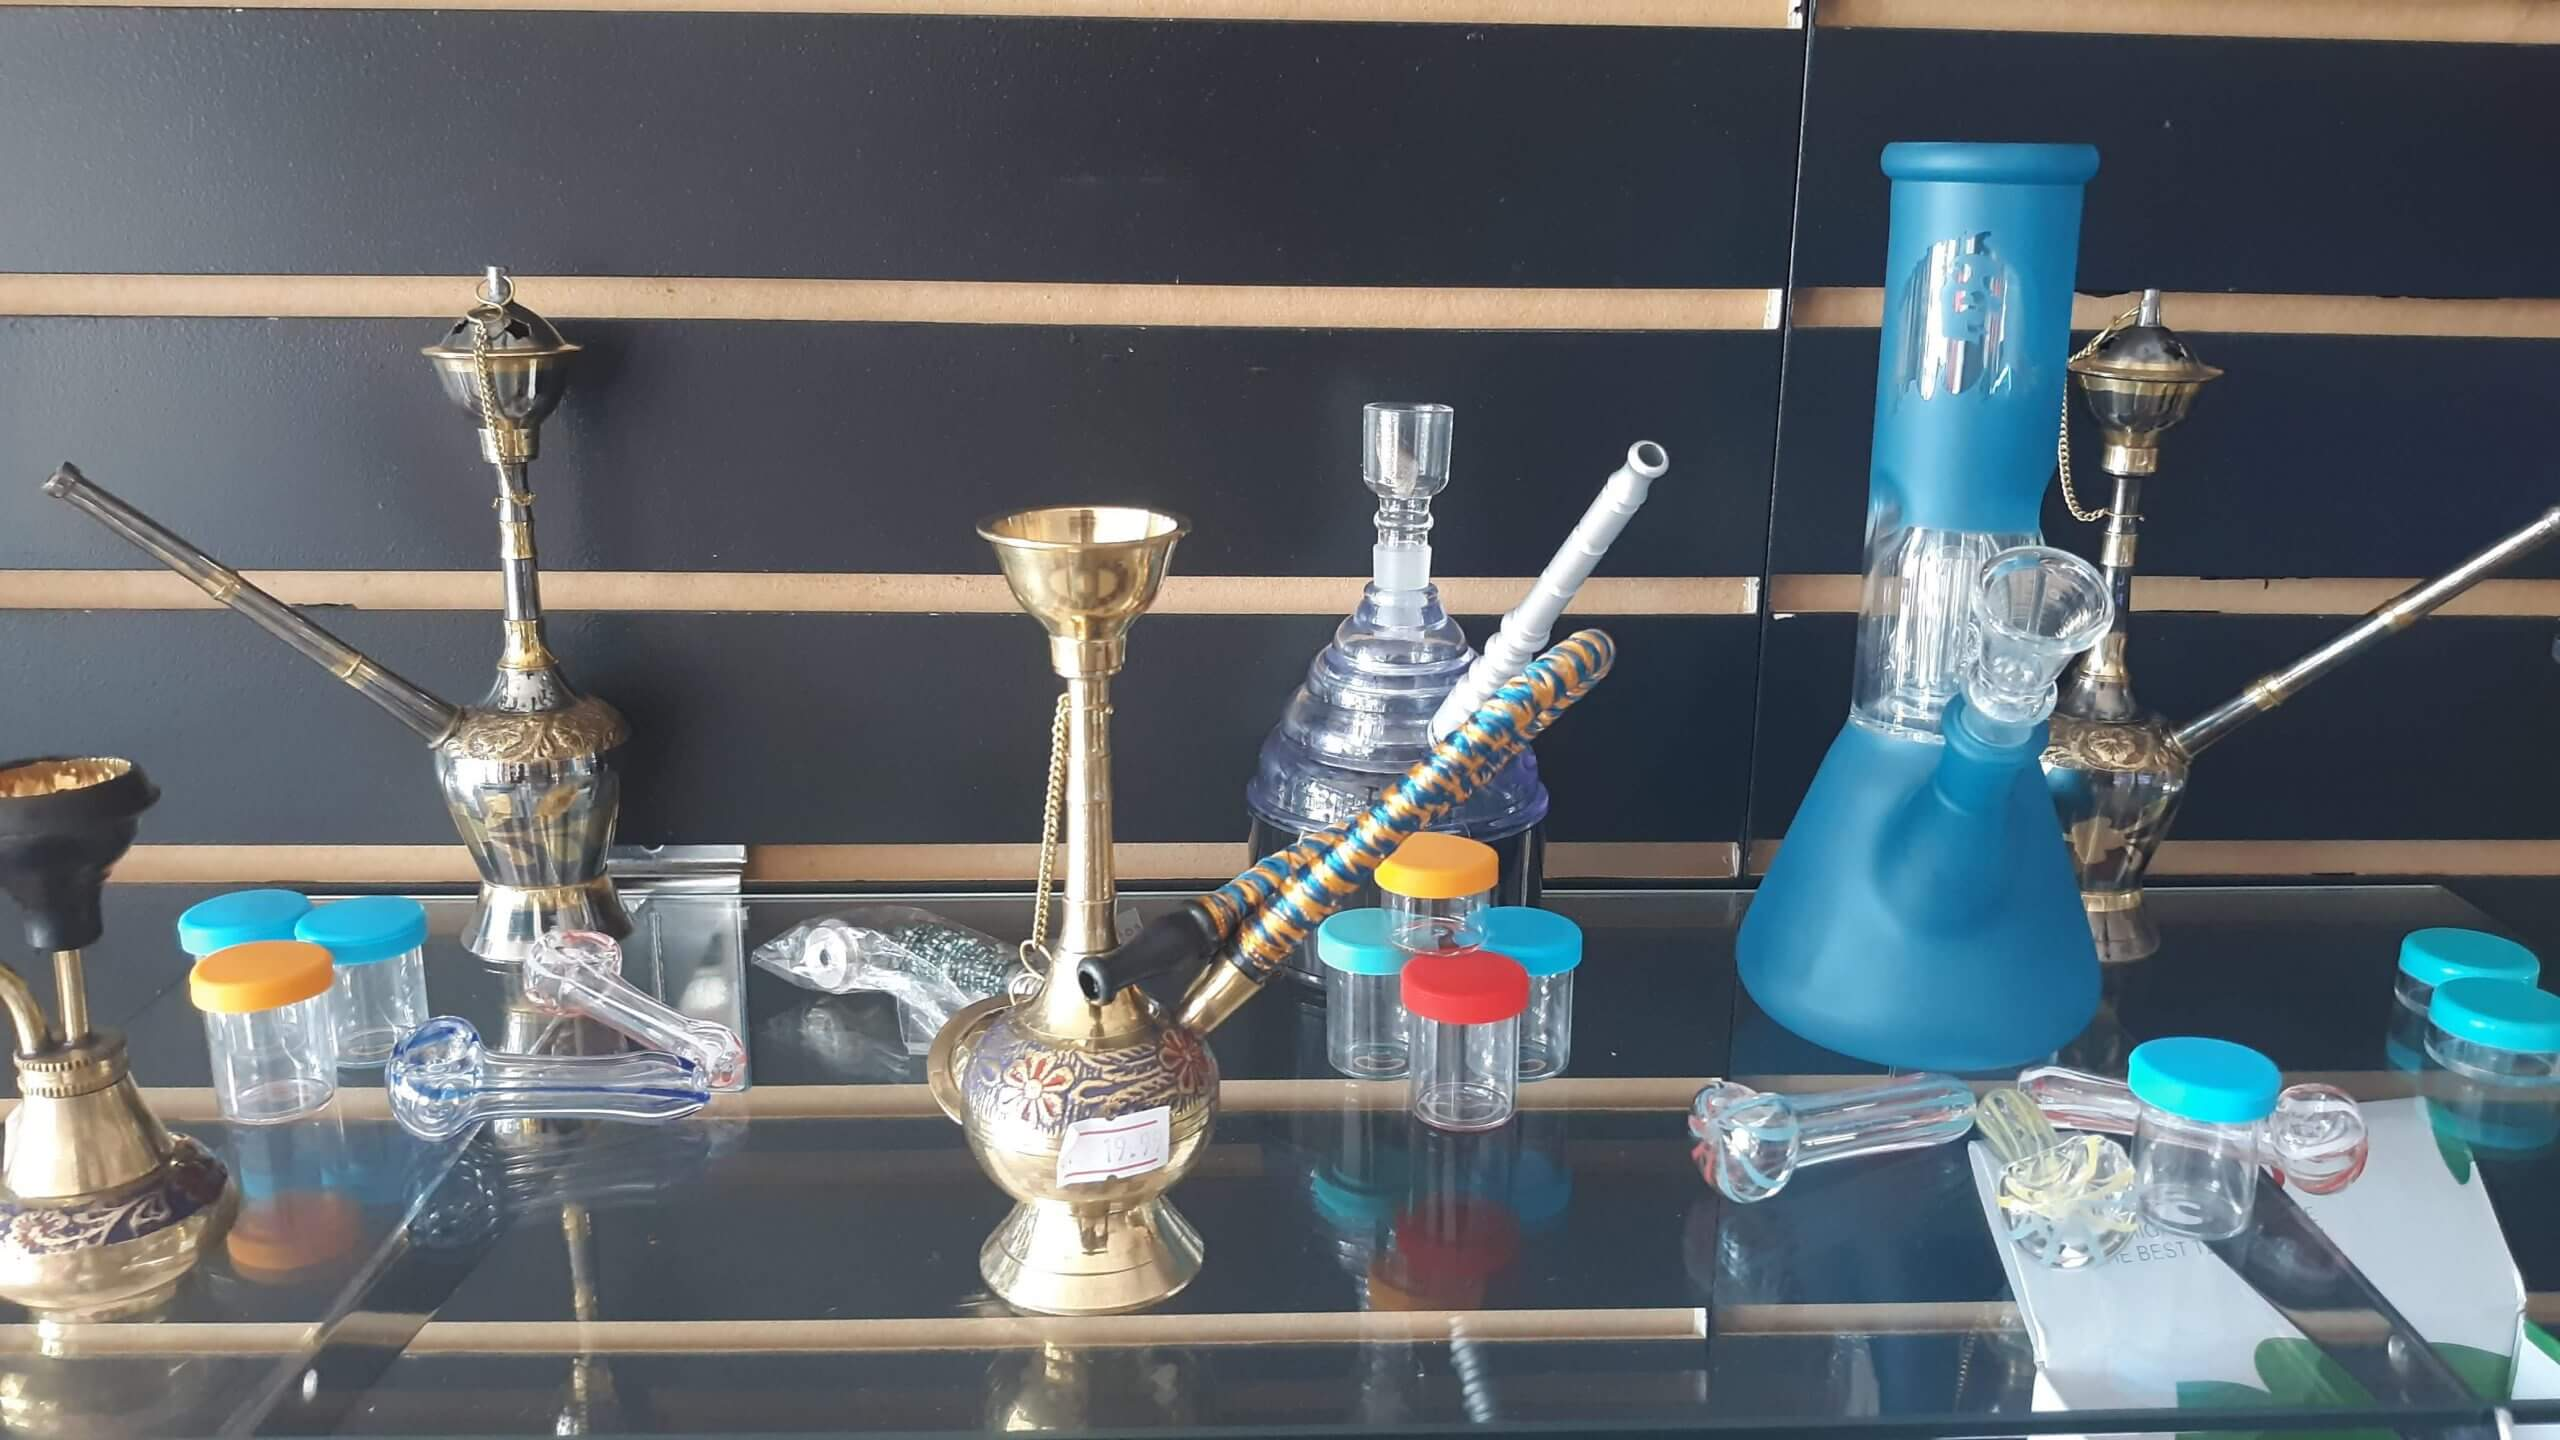 CBD Products, Herbs, bath Booms, Incense and edibles For Sales In Our Store In Killeen, TX (73)